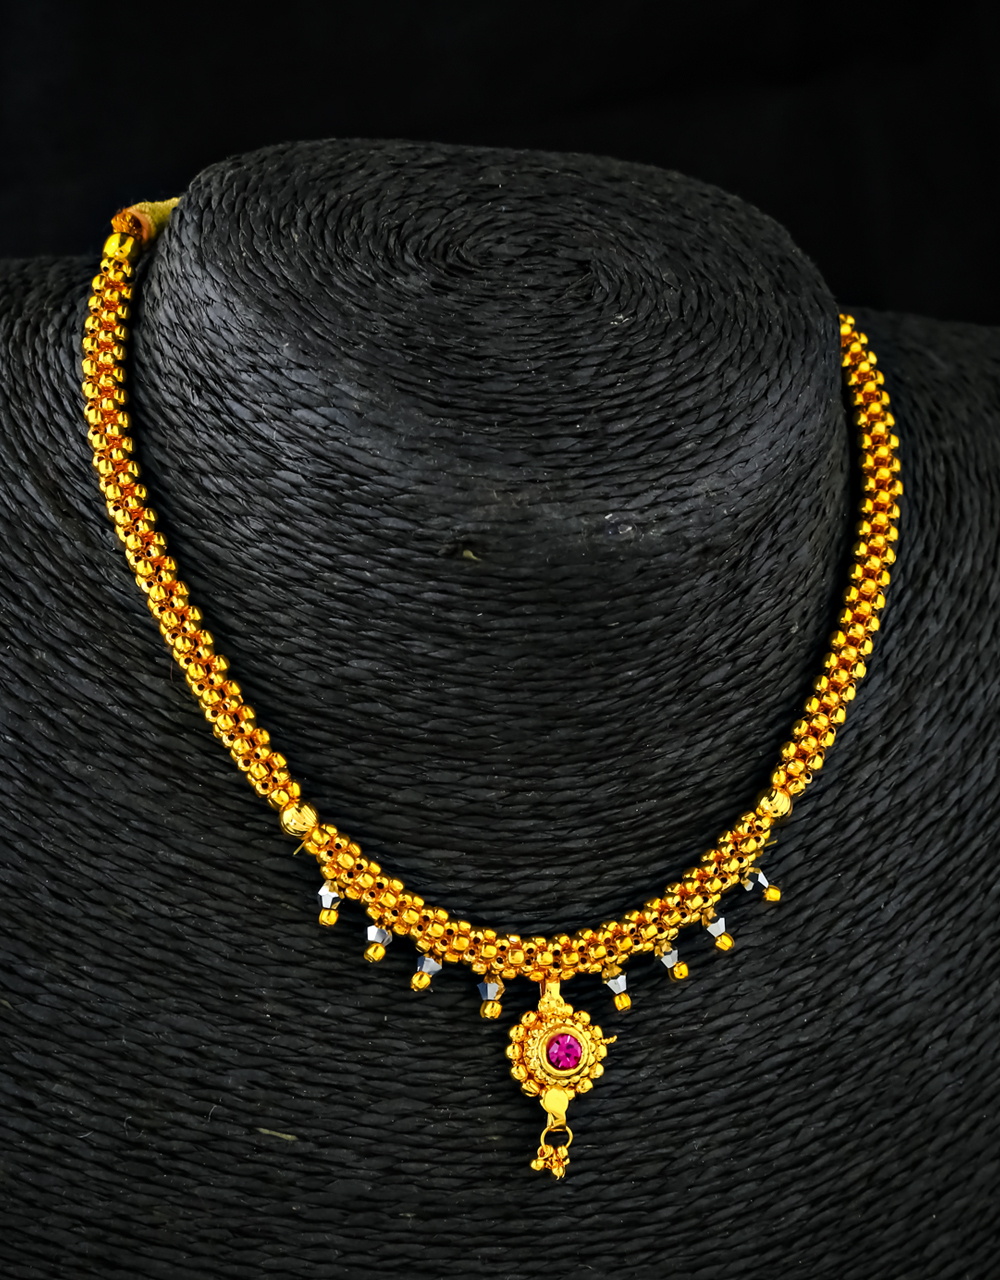 Designer Golden Beaded Thushi Necklace for Women Styled with Black Beads